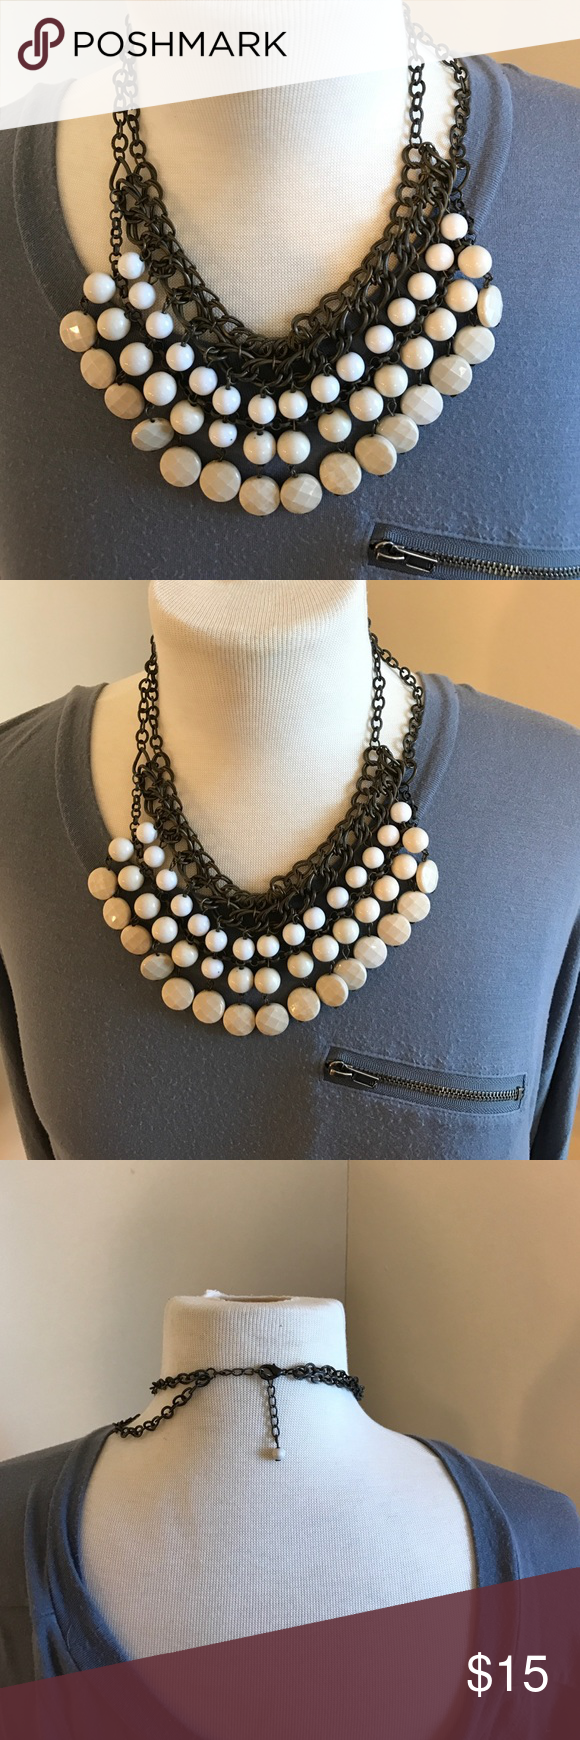 Charming Charlie White Bead Necklace Great condition worn only a few times no loose stones Charming Charlie Jewelry Necklaces